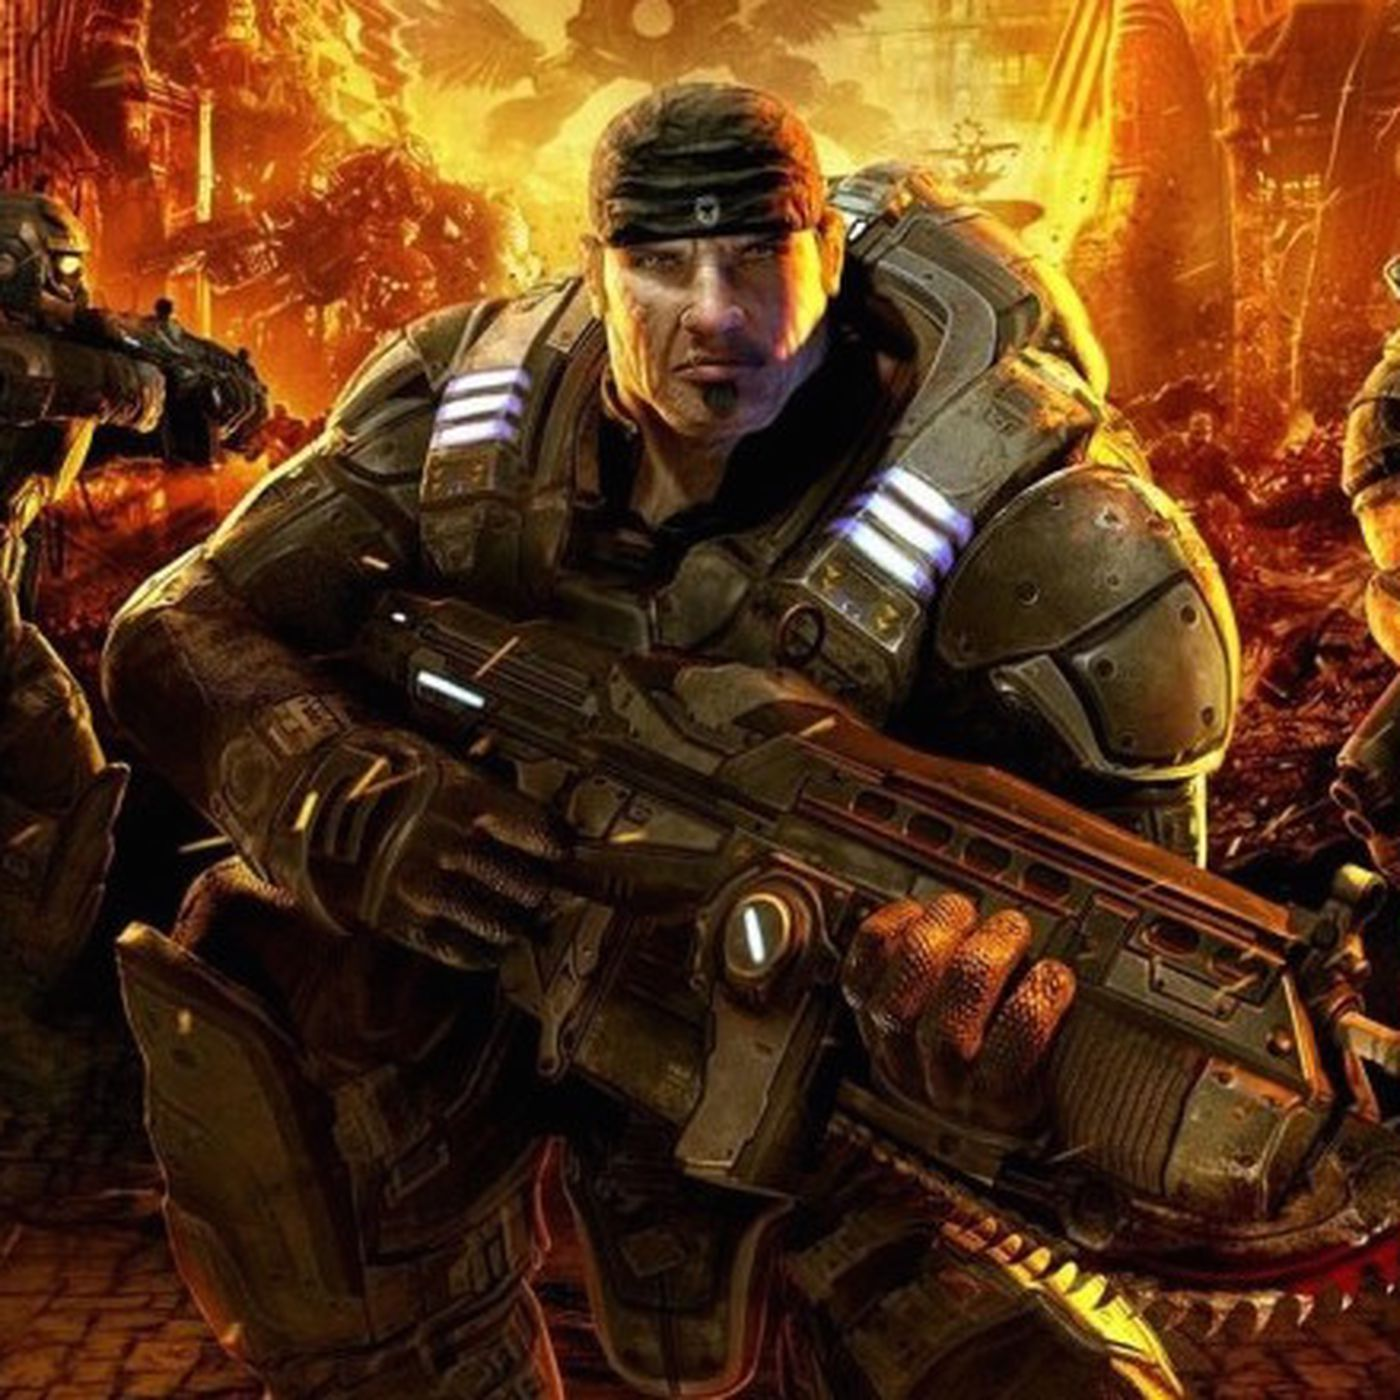 There S Going To Be A Gears Of War Movie The Verge